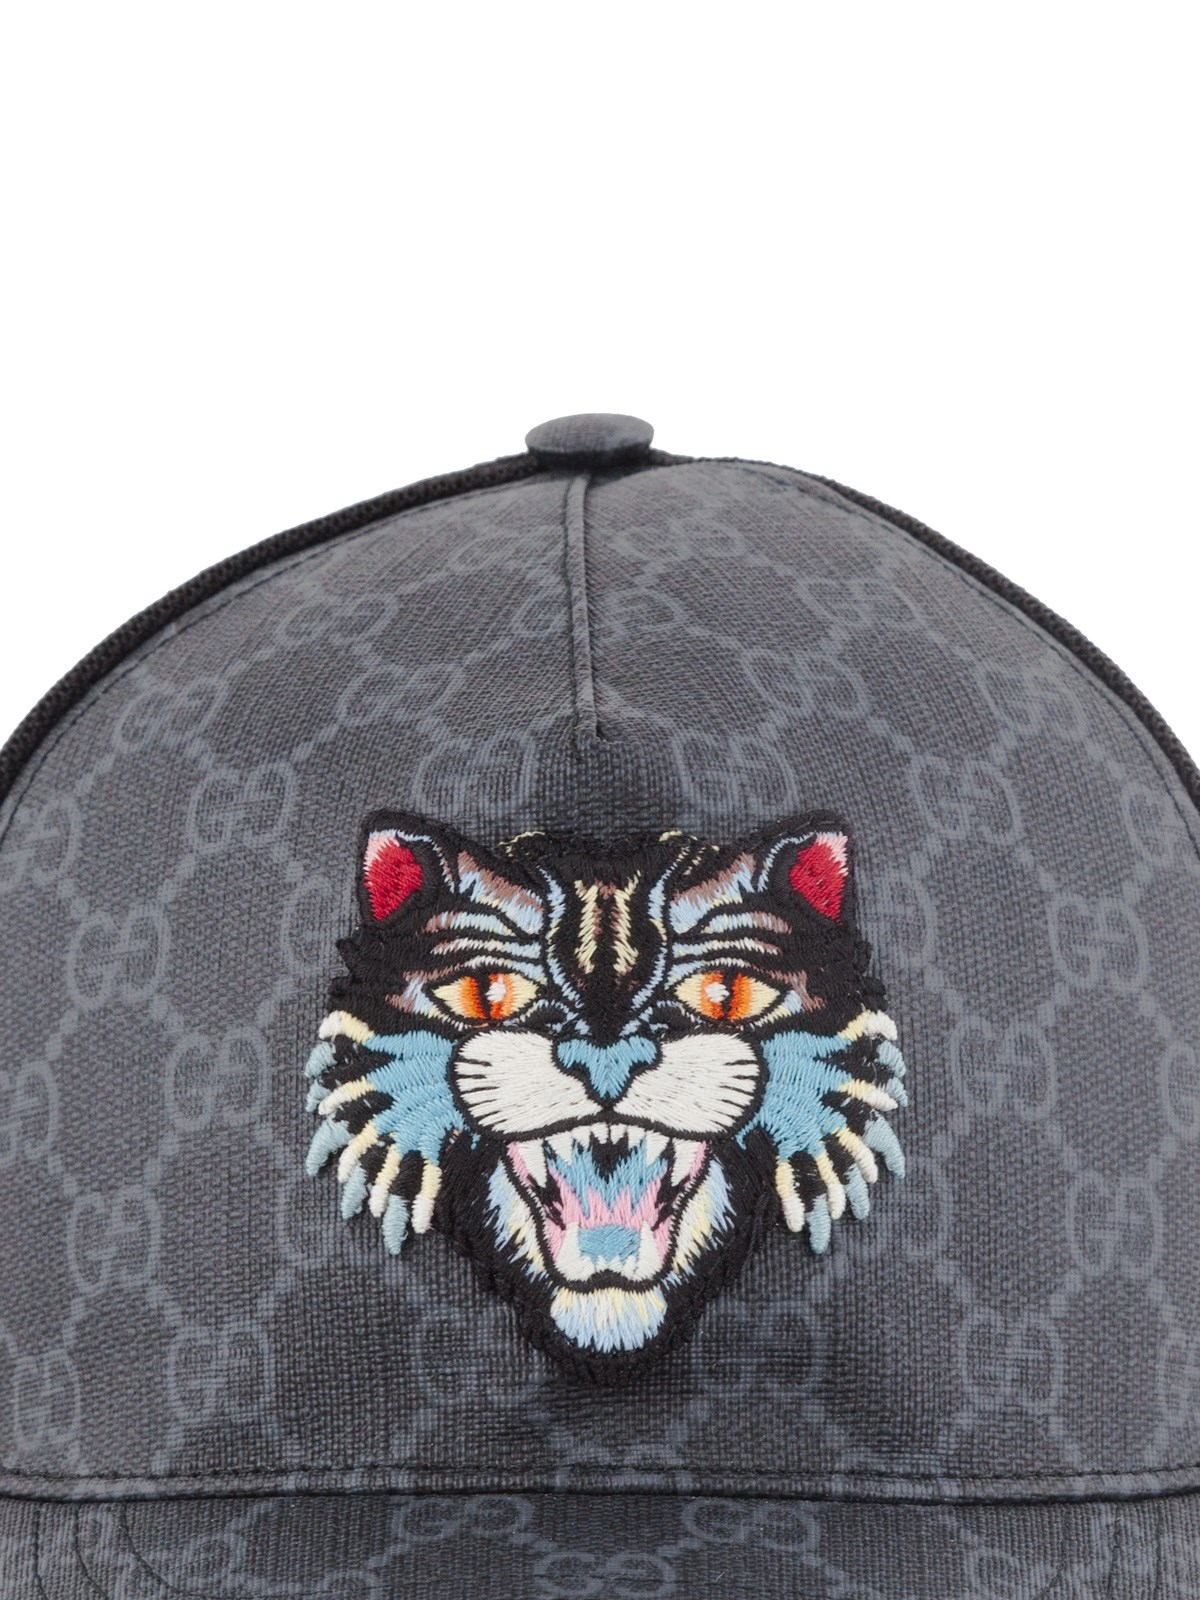 651b8557db496 gucci GG SUPREME ANGRY CAT BASEBALL CAP available on montiboutique ...